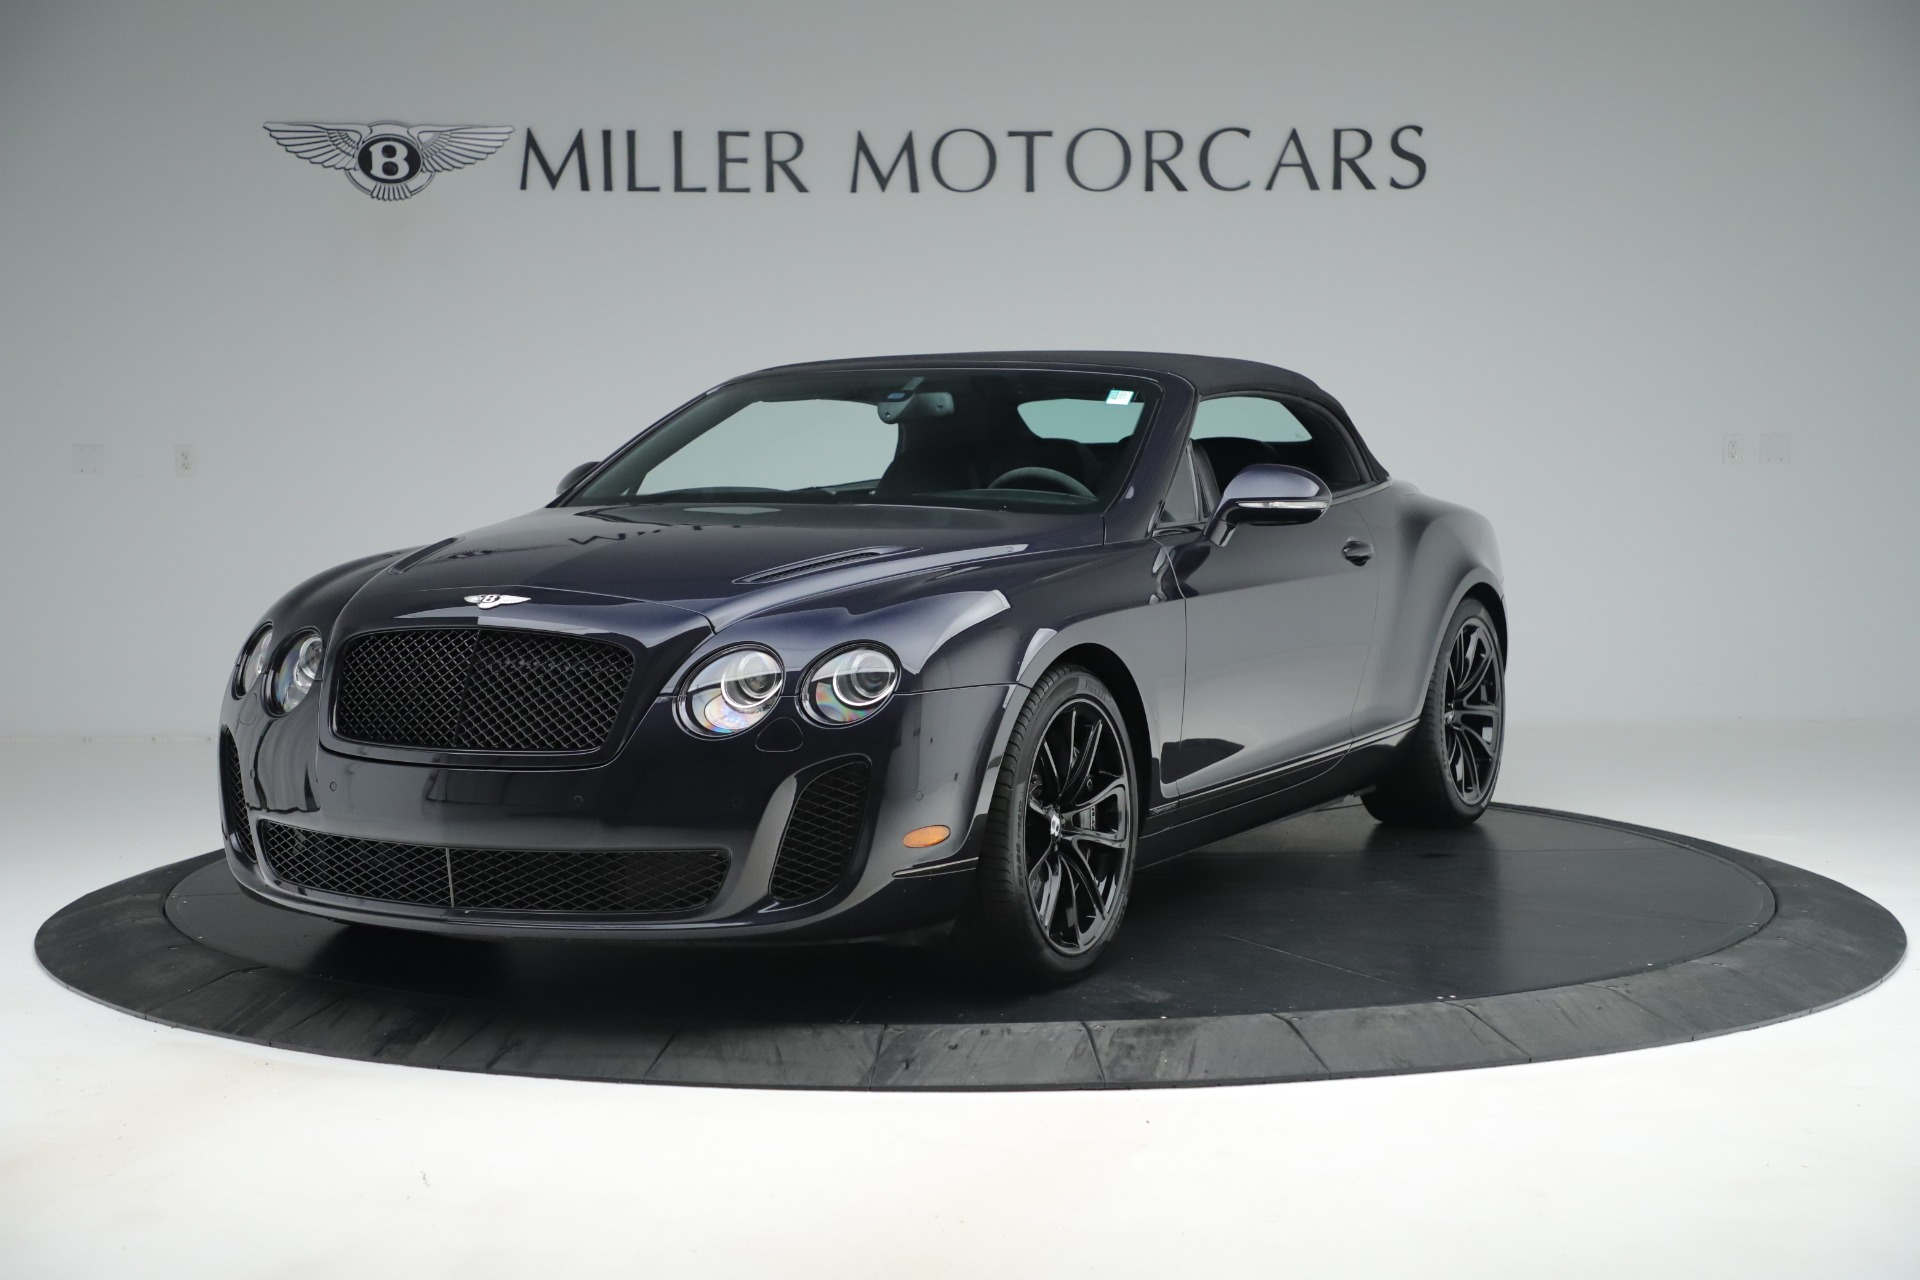 Used 2012 Bentley Continental GT Supersports For Sale In Westport, CT 3214_p13